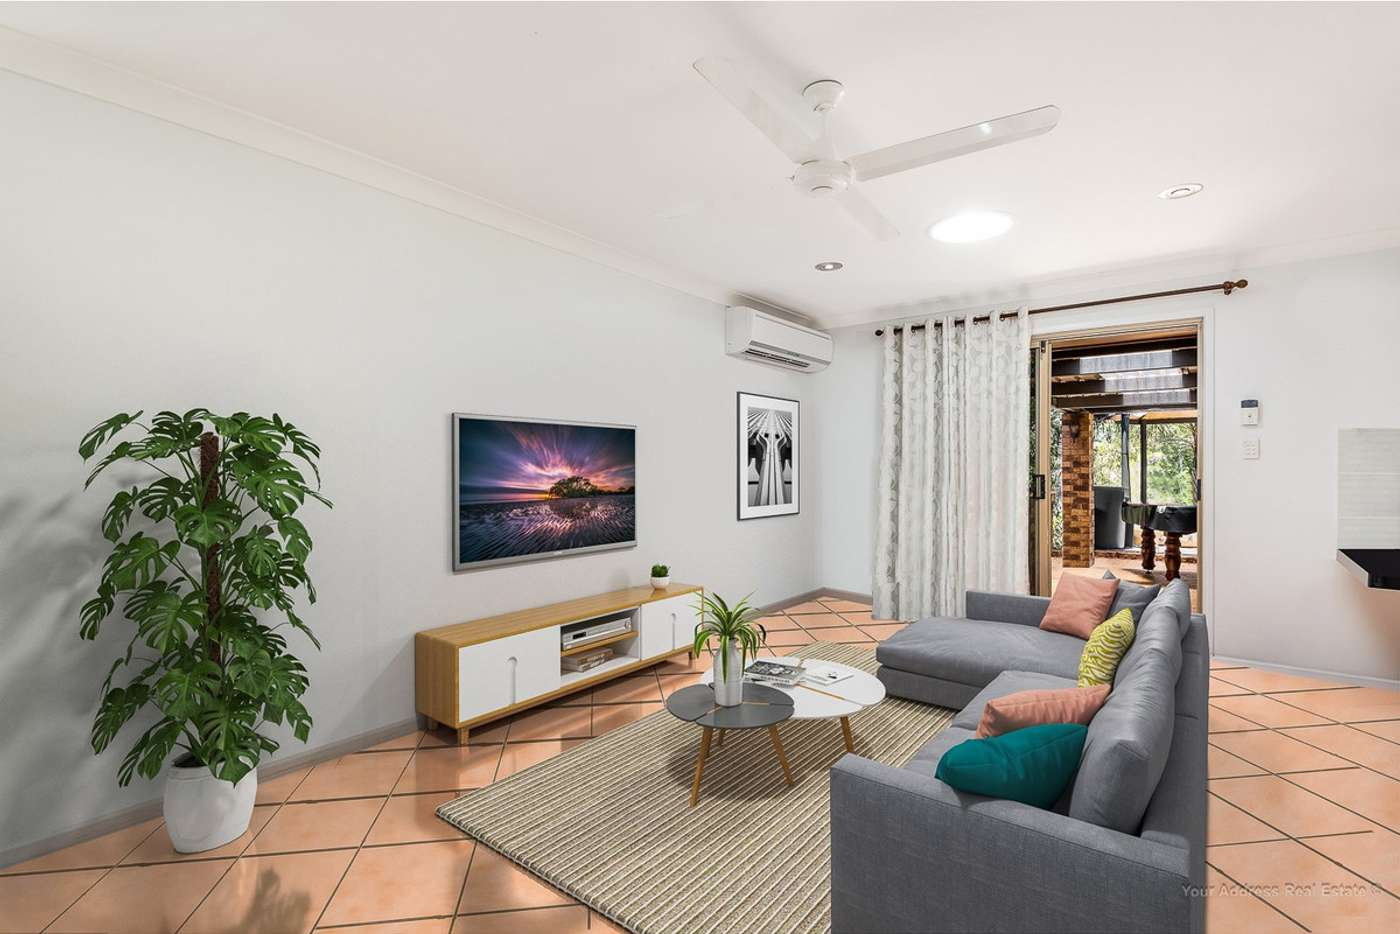 Seventh view of Homely house listing, 163-167 Granger Road, Park Ridge South QLD 4125